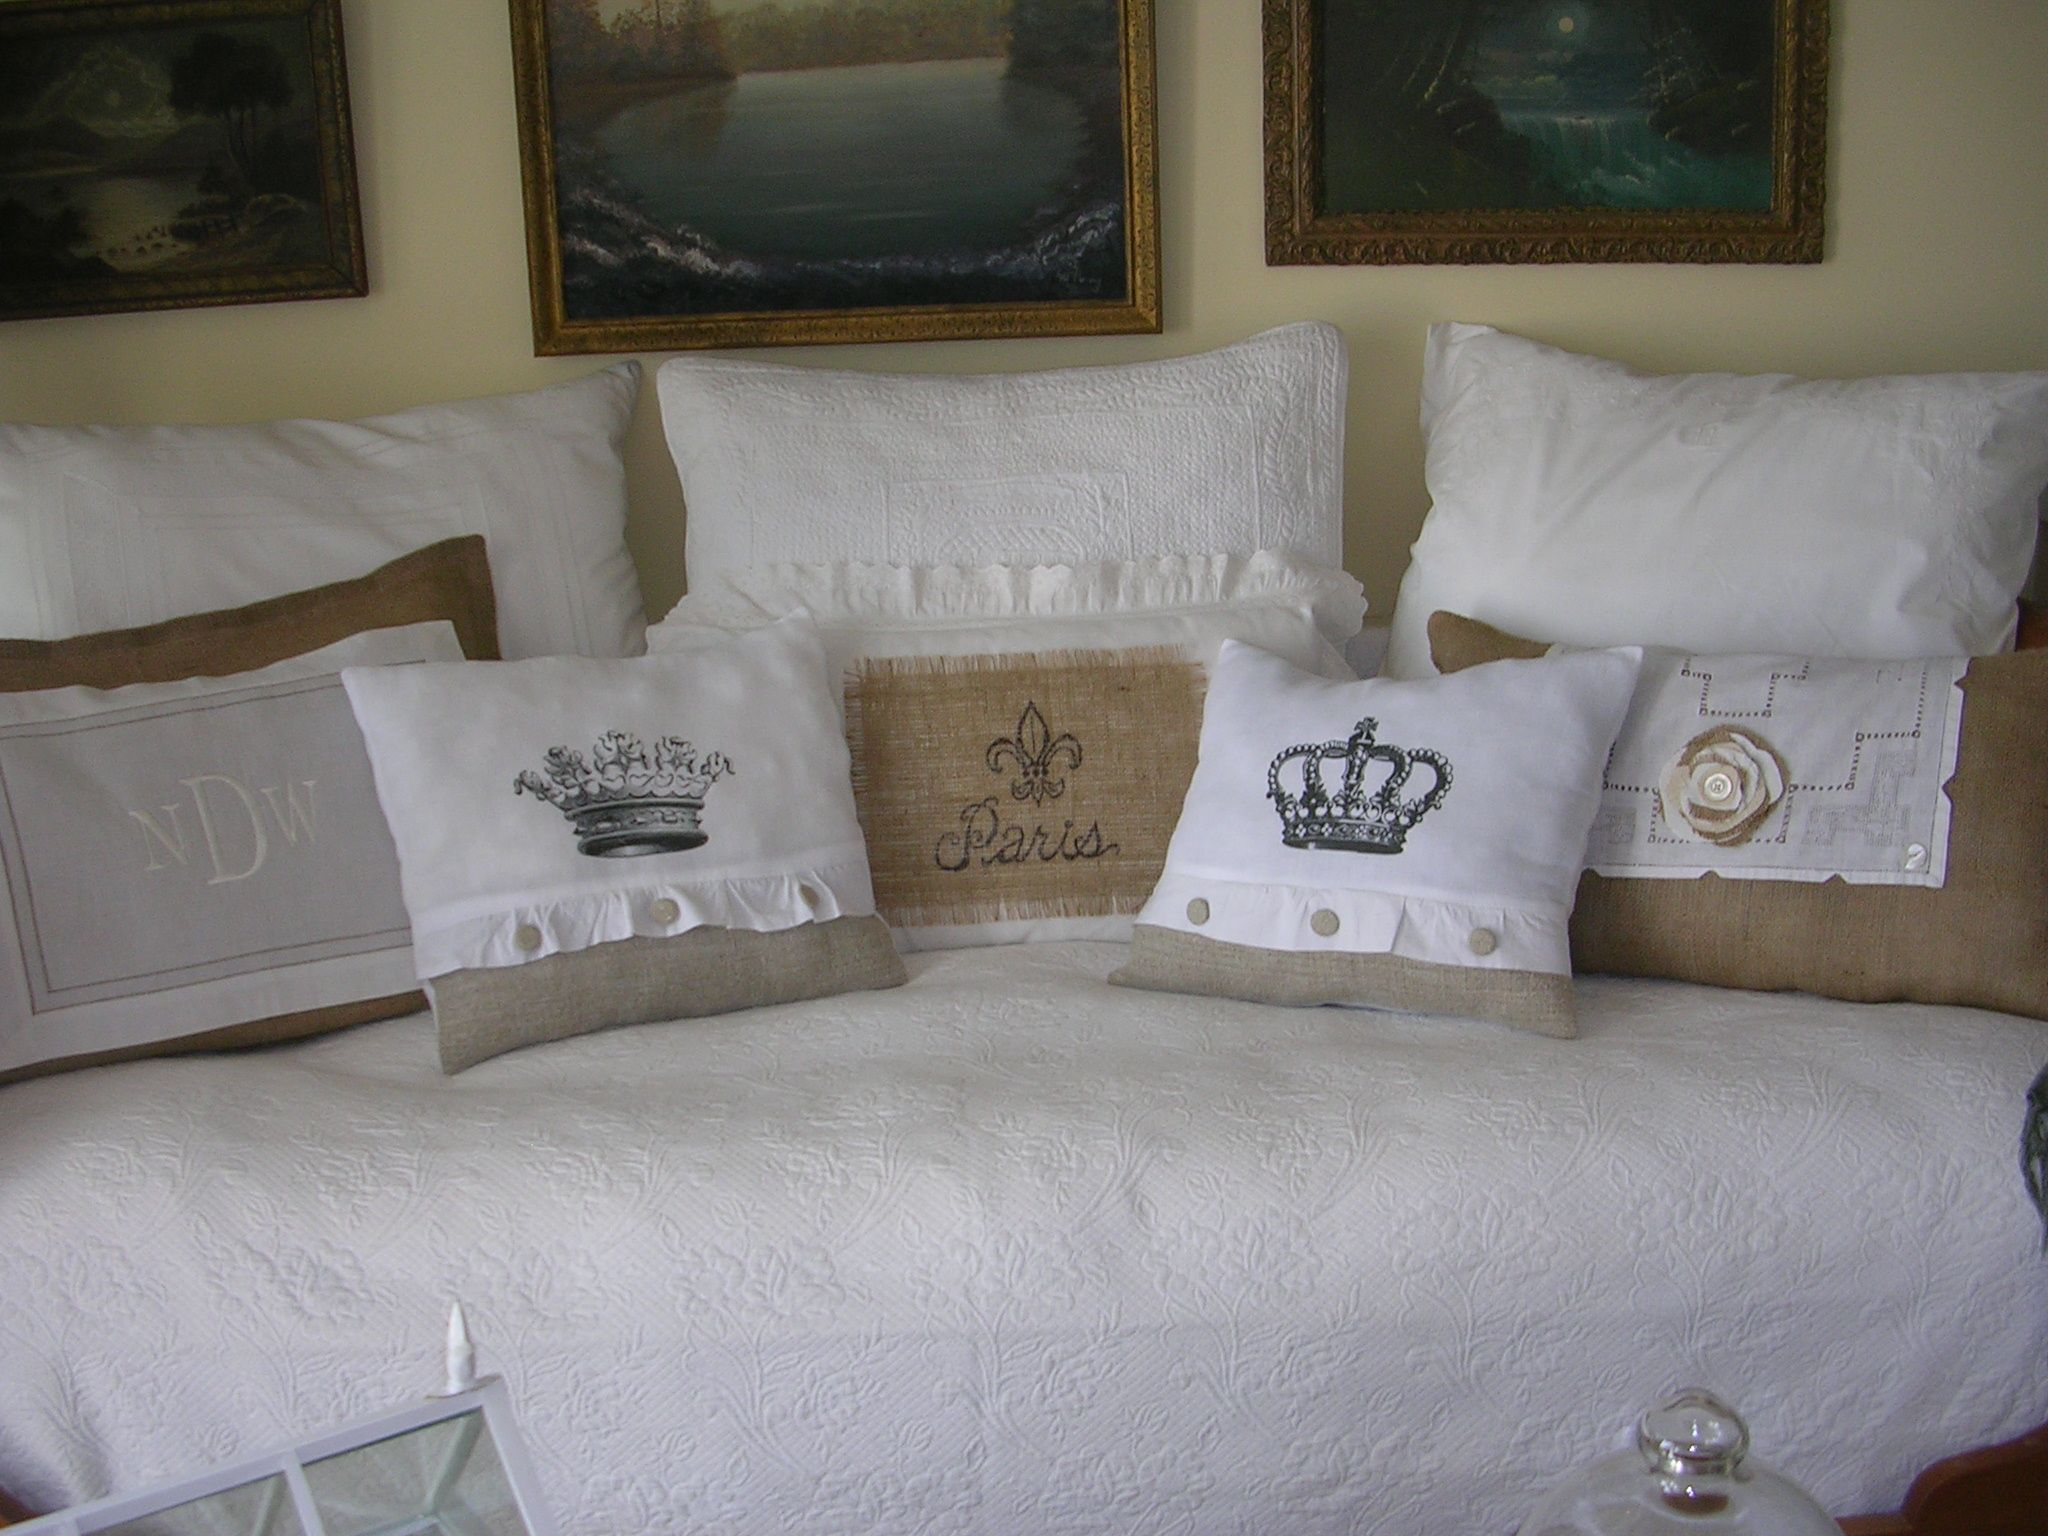 Daybed pillows made from french tea towels and antique grain sacks